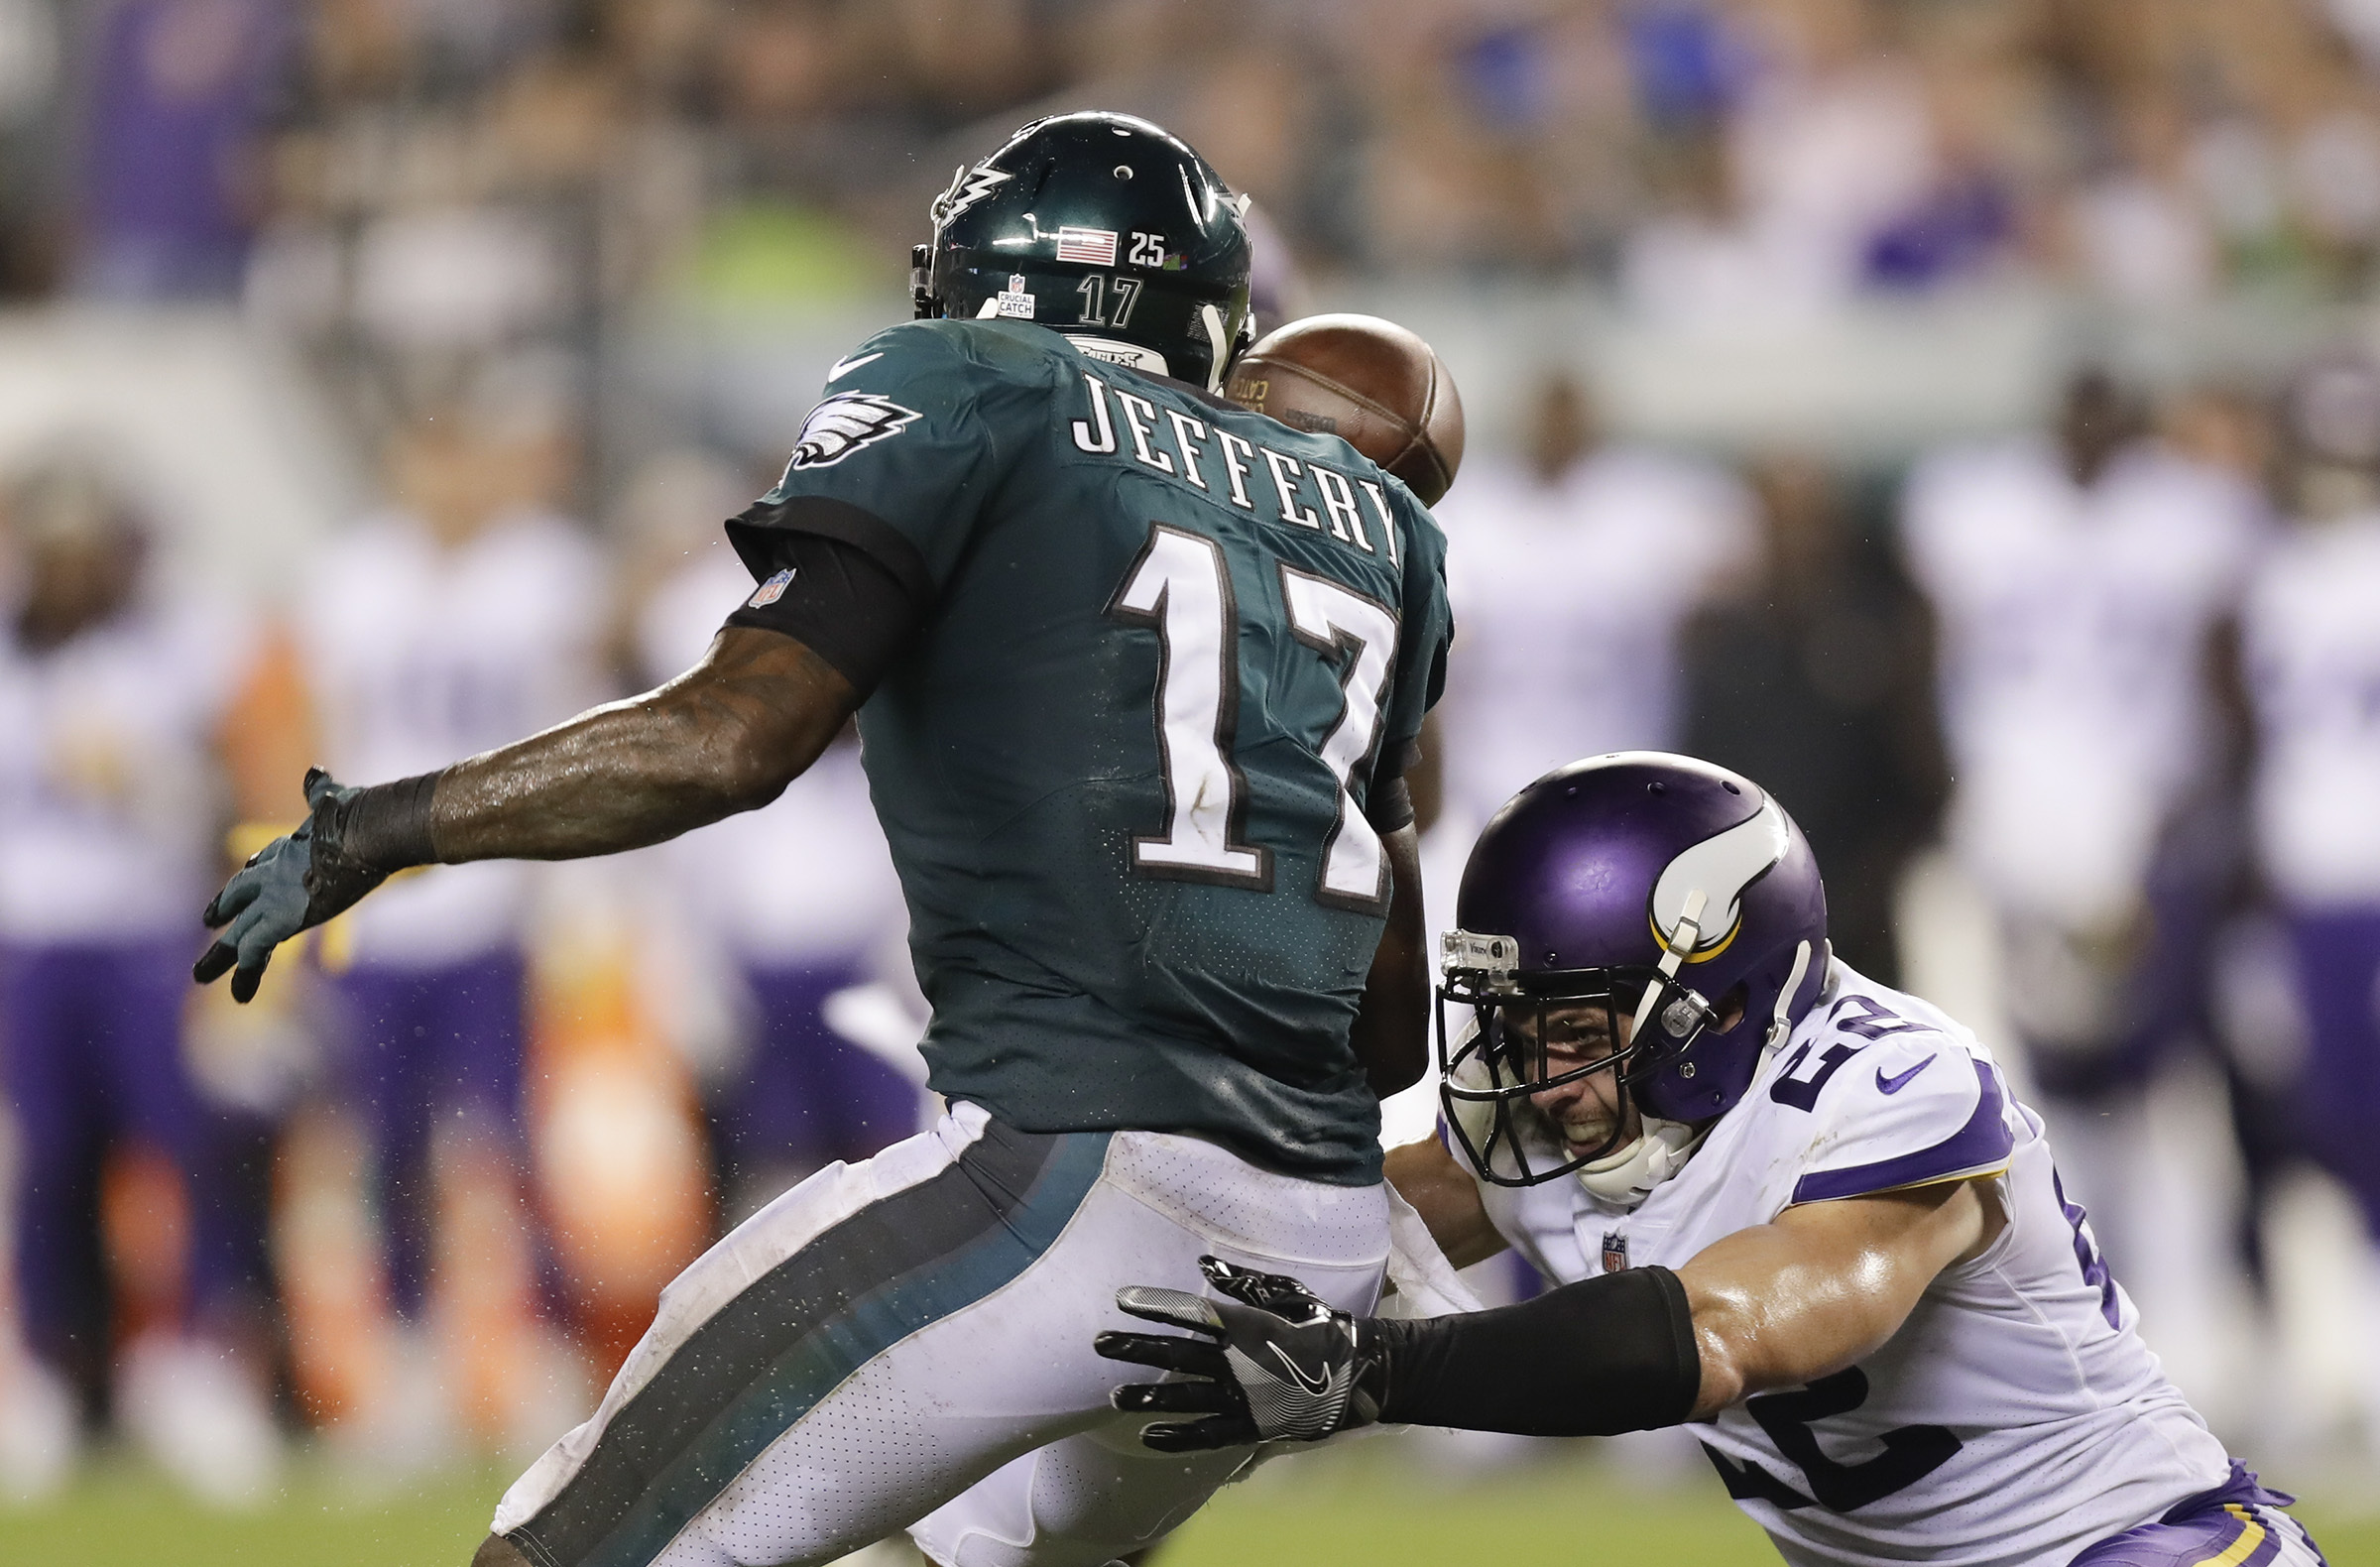 Eagles wide receiver Alshon Jeffery tries to catch the football against Minnesota Vikings free safety Harrison Smith during the fourth-quarter on Sunday, October 7, 2018 in Philadelphia.